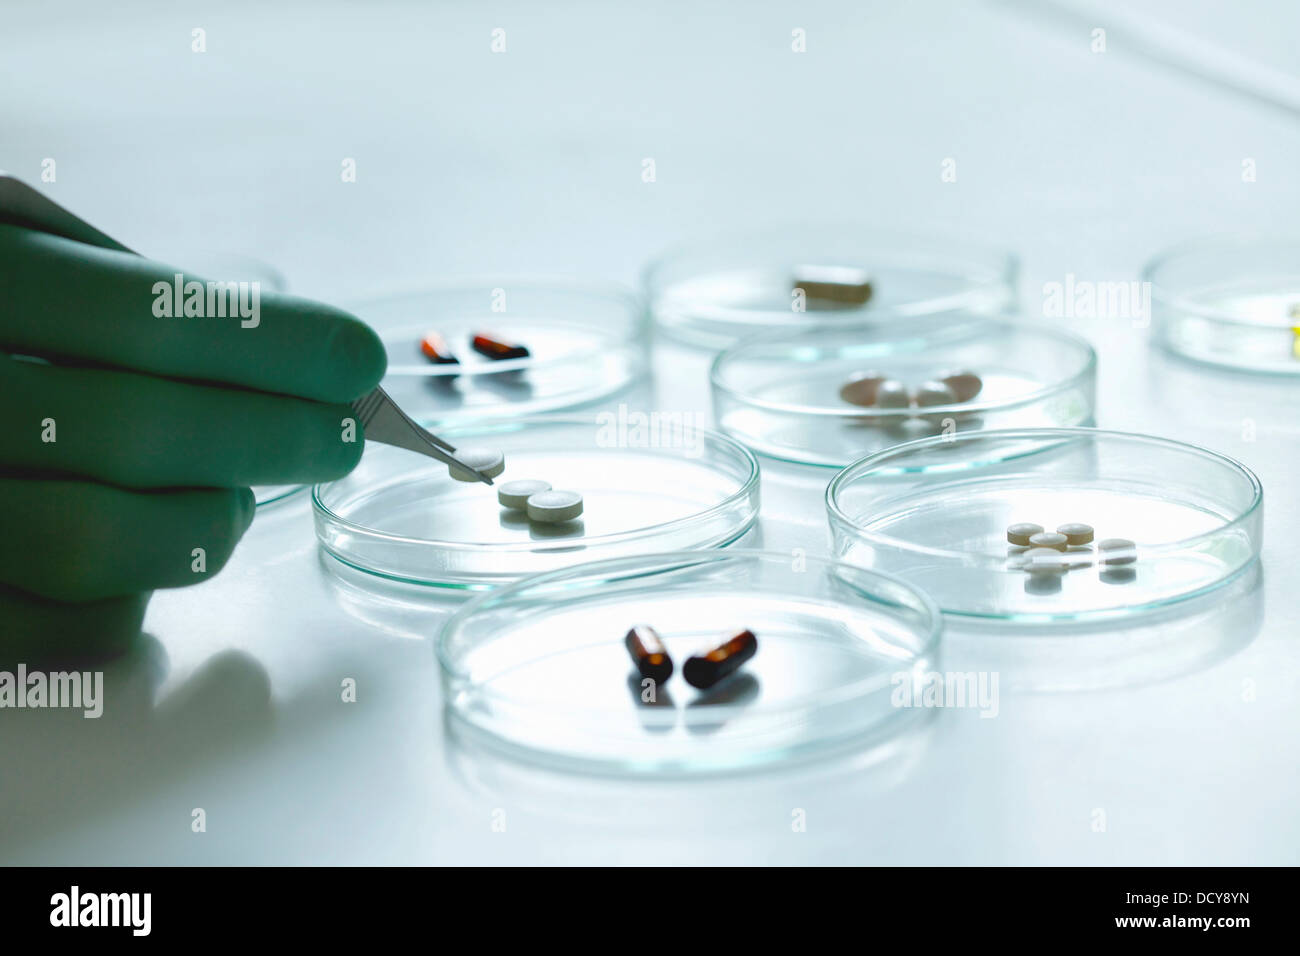 Scientist Holding Pill with Tweezers over Petri Dish Stock Photo